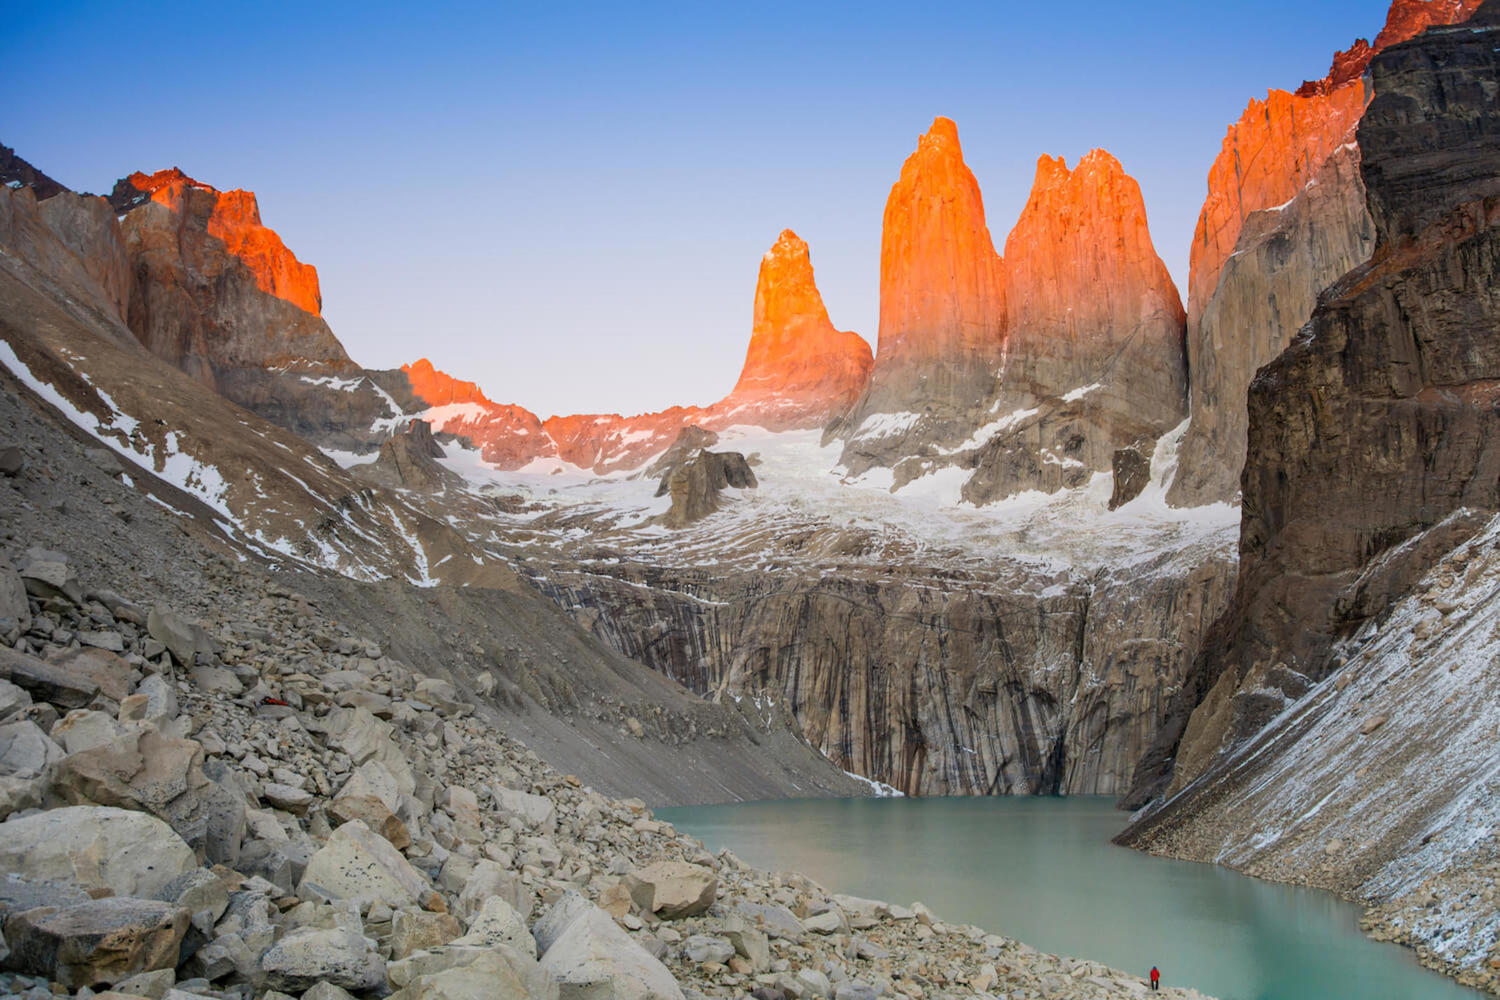 Sunrise at the towers of Torres del Paine